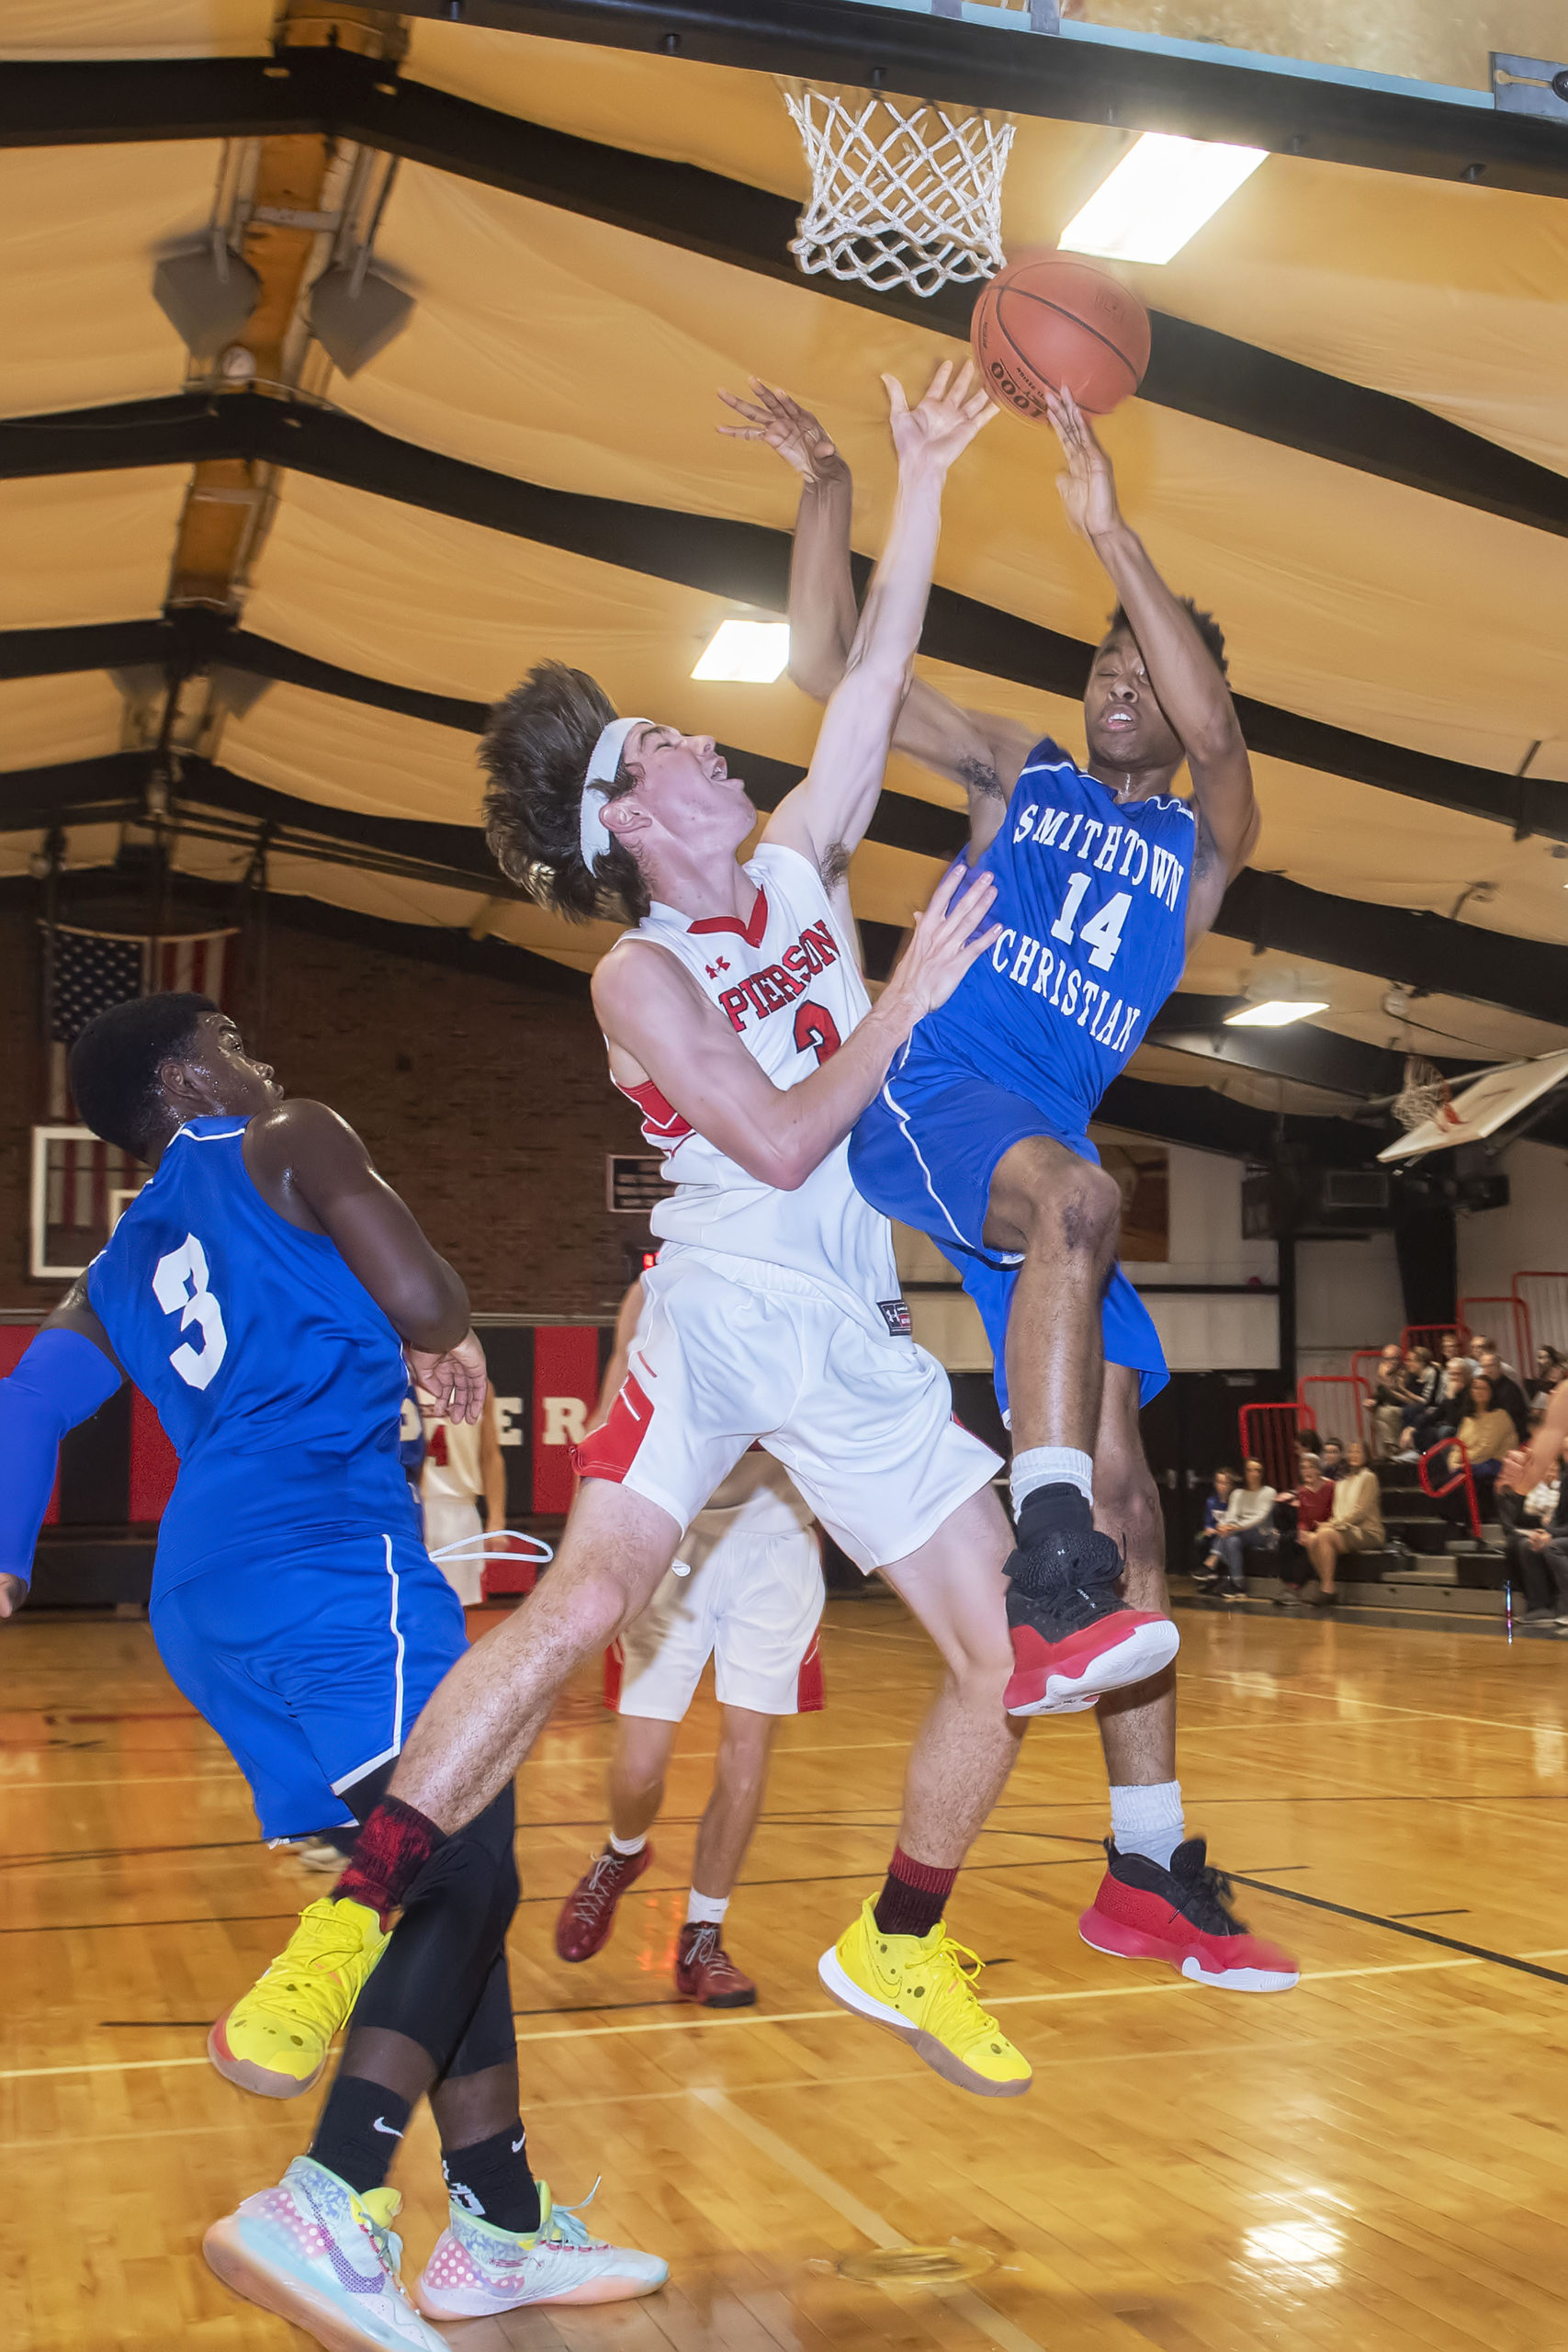 Pierson's Henry Brooks goes up with a Smithtown Christian player for the ball.